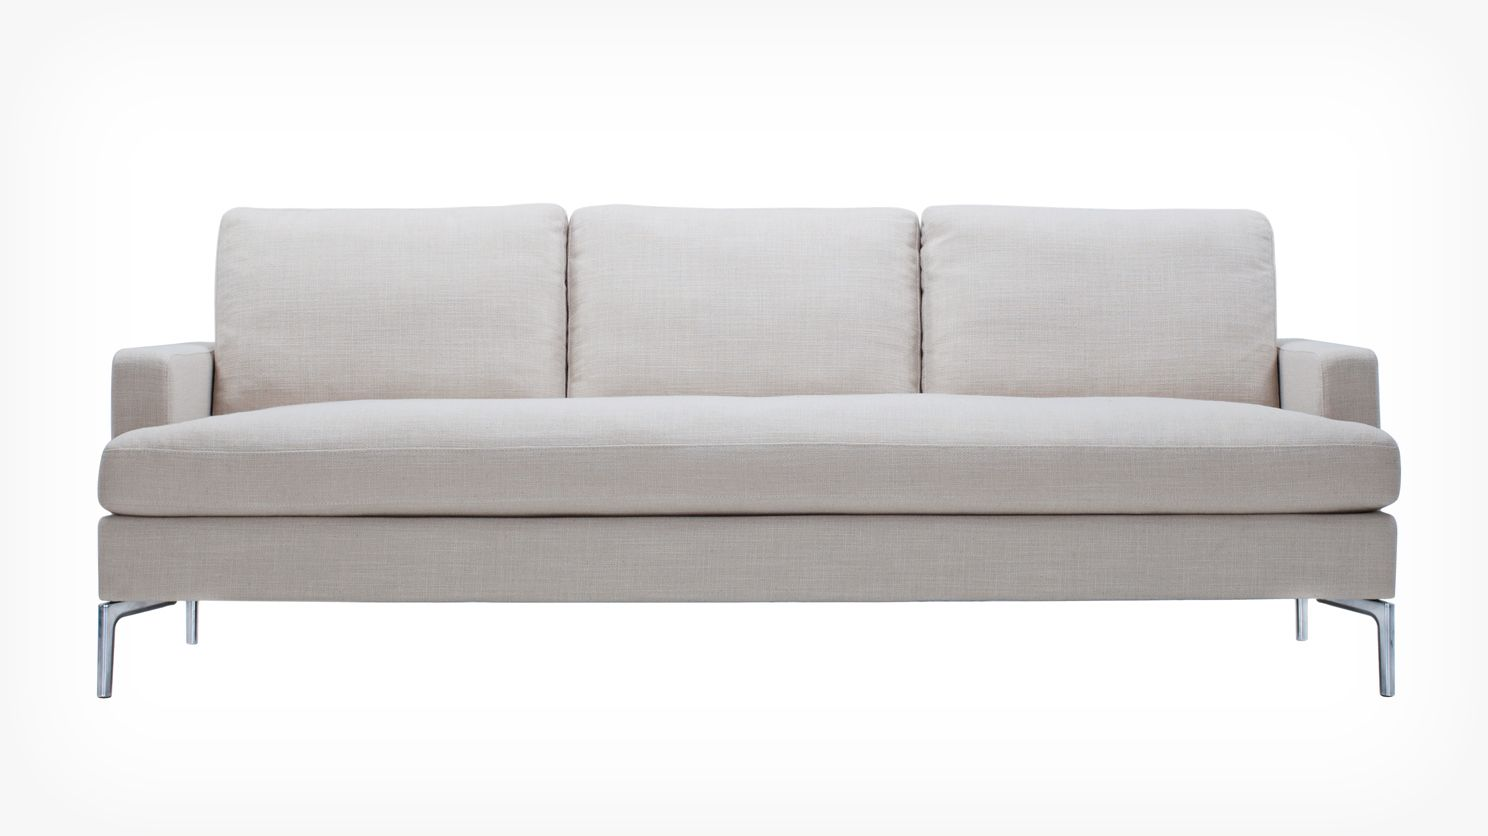 Eve Sofa From Eq3 Canada Down Filled Cushions And Removable Cover